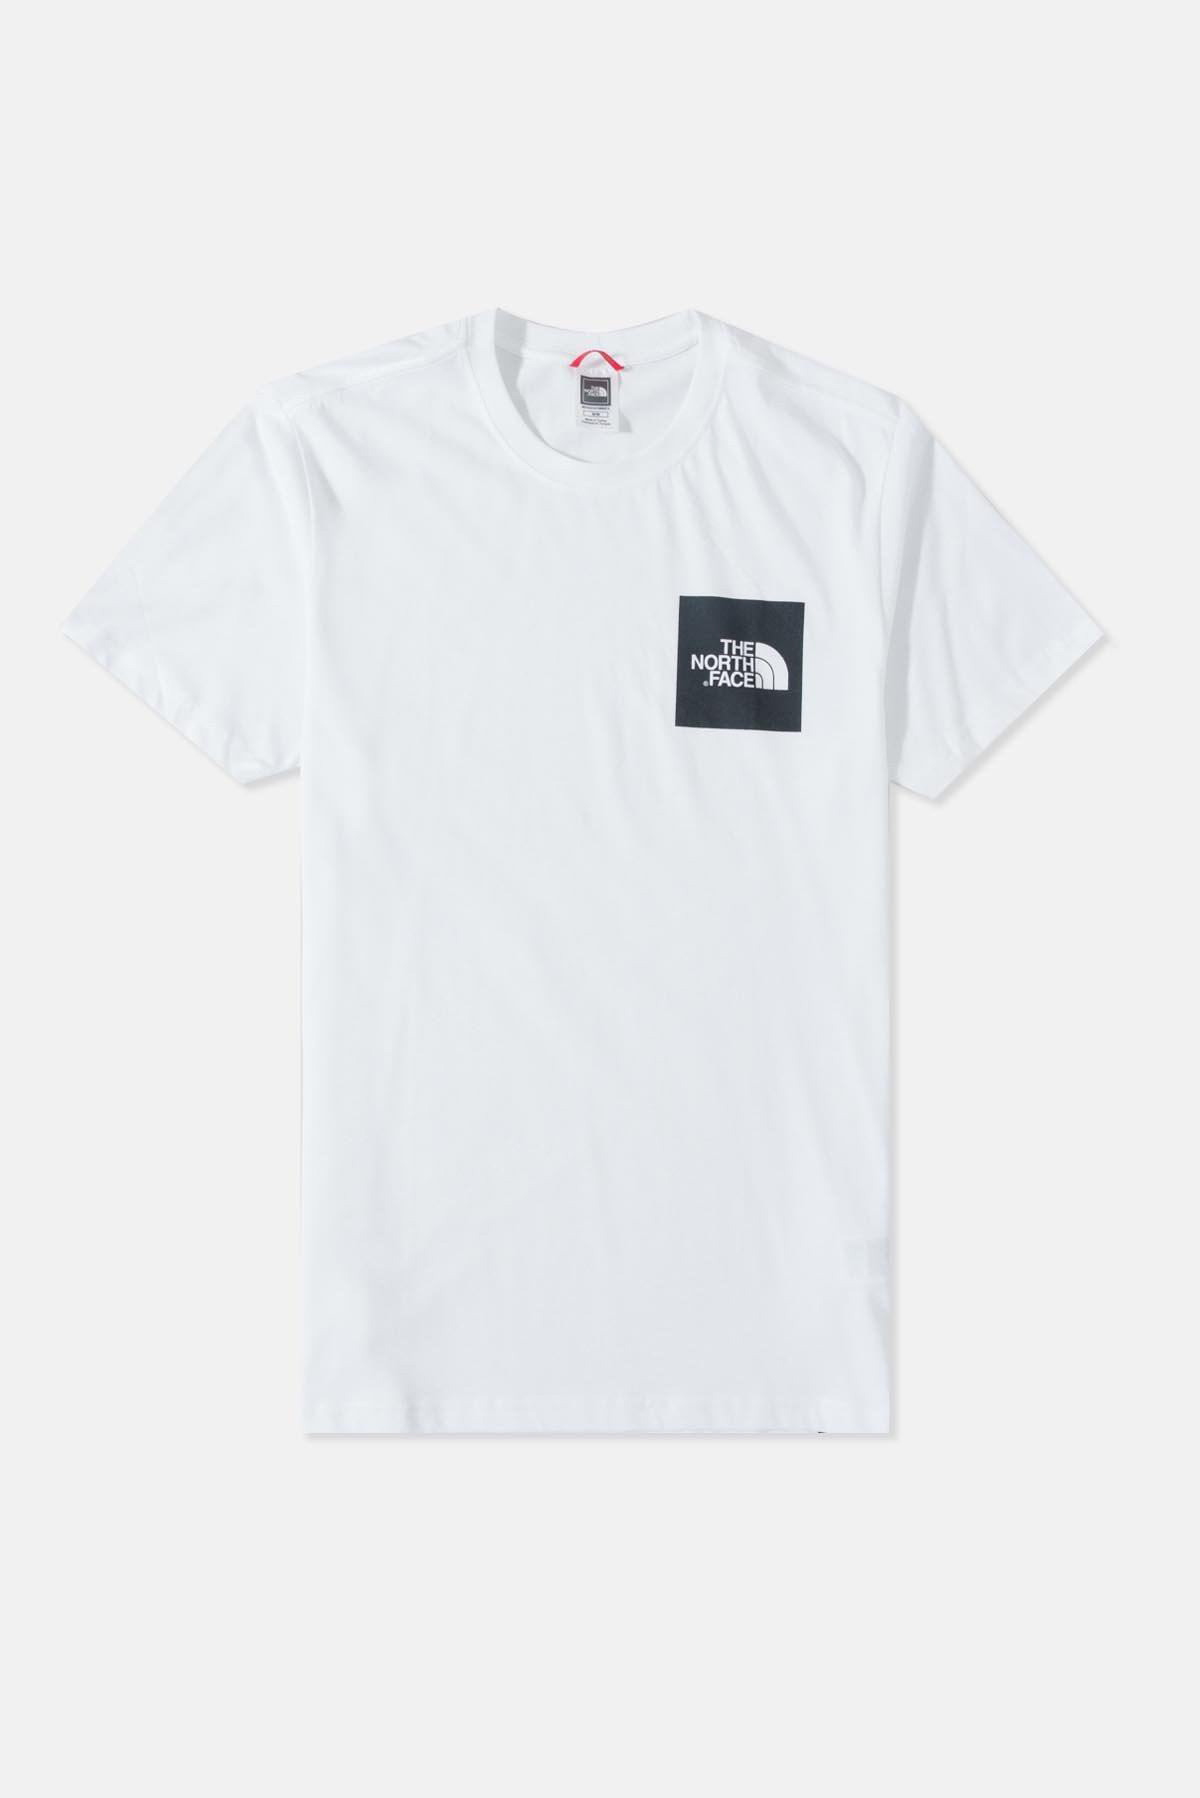 North Face Capsule Fine S S T Shirt available from Priory